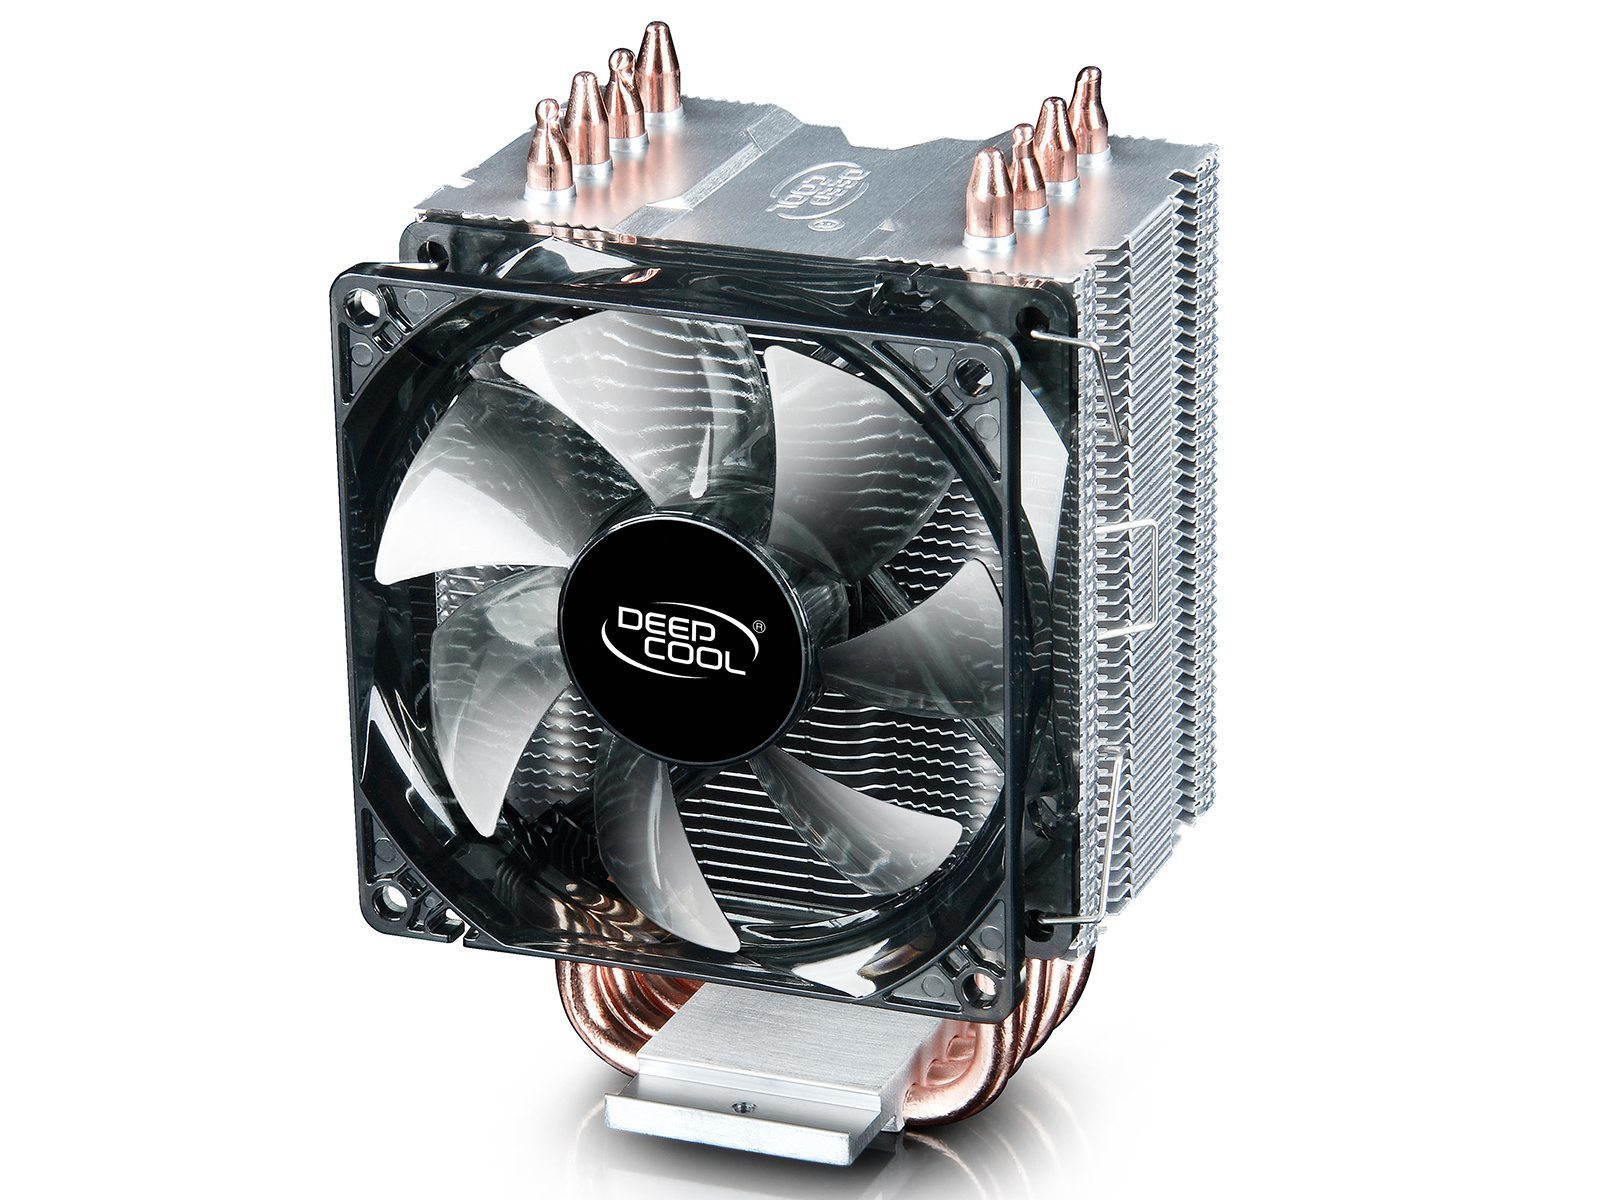 CPU Cooler GAMMAXX C40 - Intel/AMD